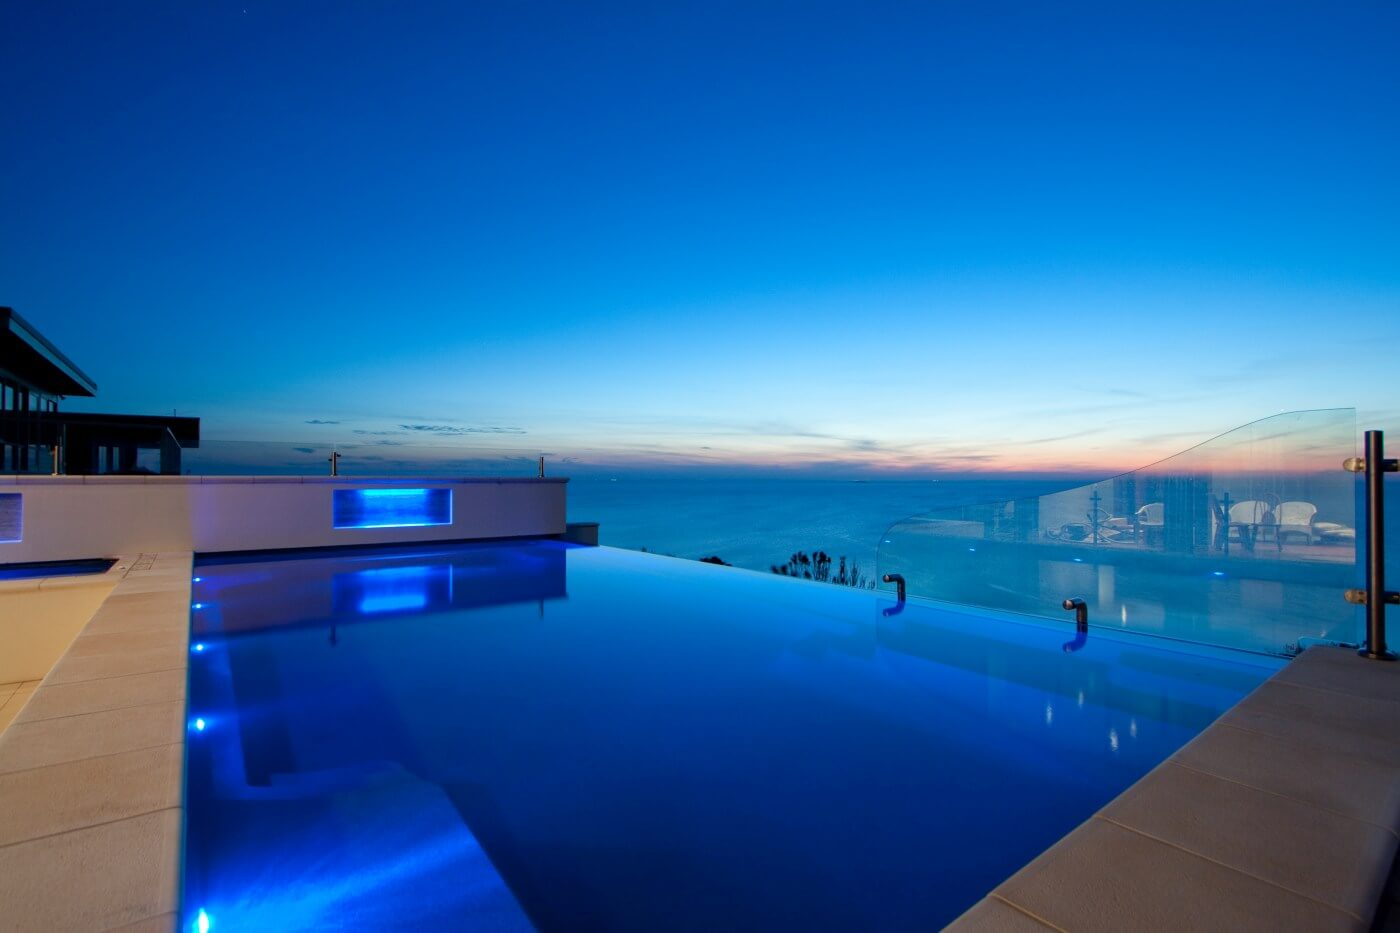 Infinity Pool Cost >> Infinity Pool Cost Why It S Worth It Compass Pools Australia